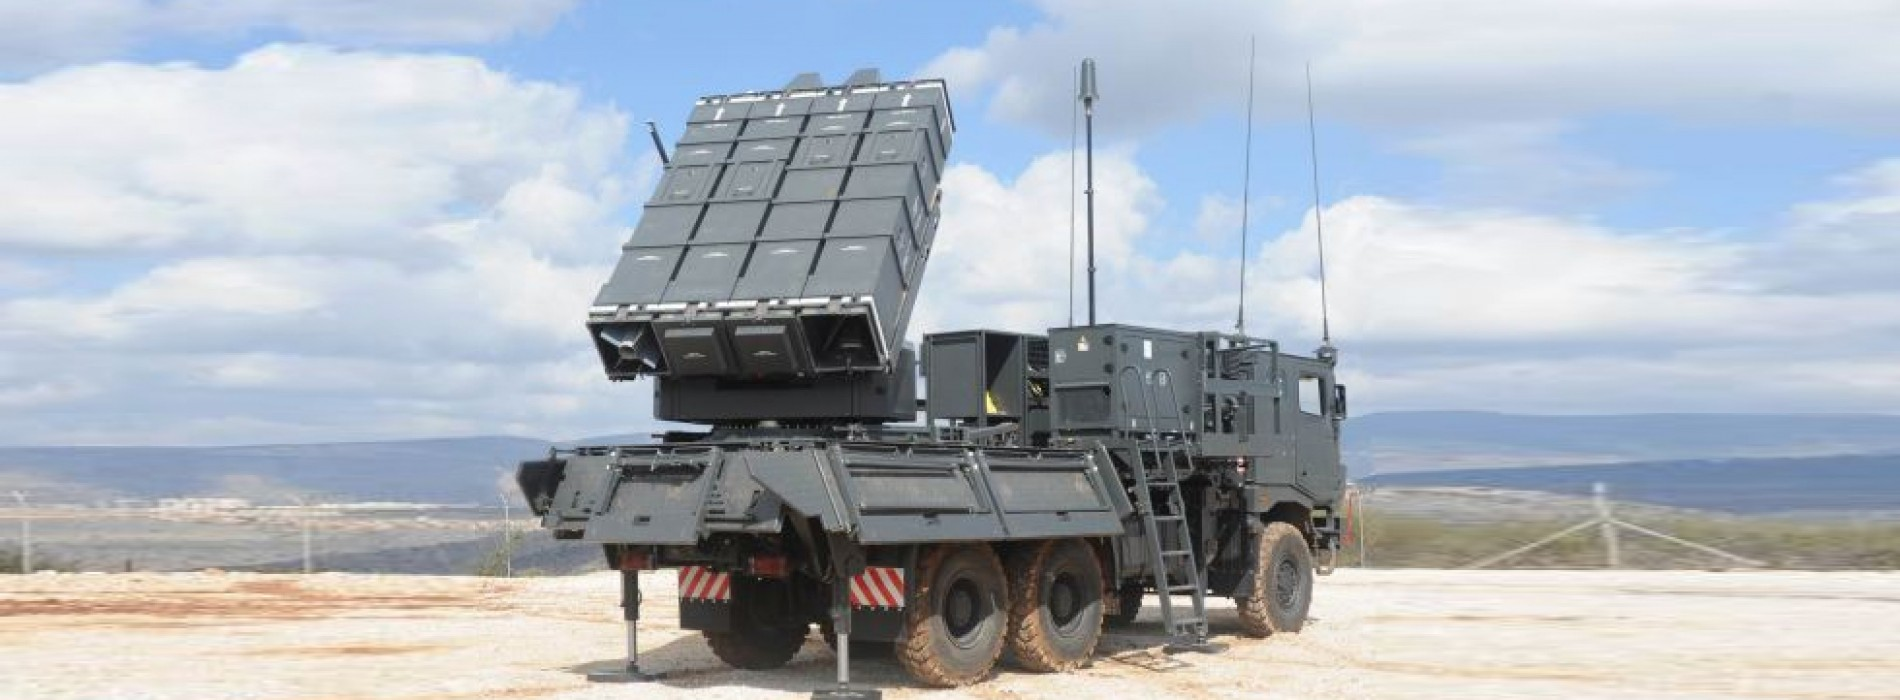 India prepares Israeli SPYDER air defence missile system for Pakistan border